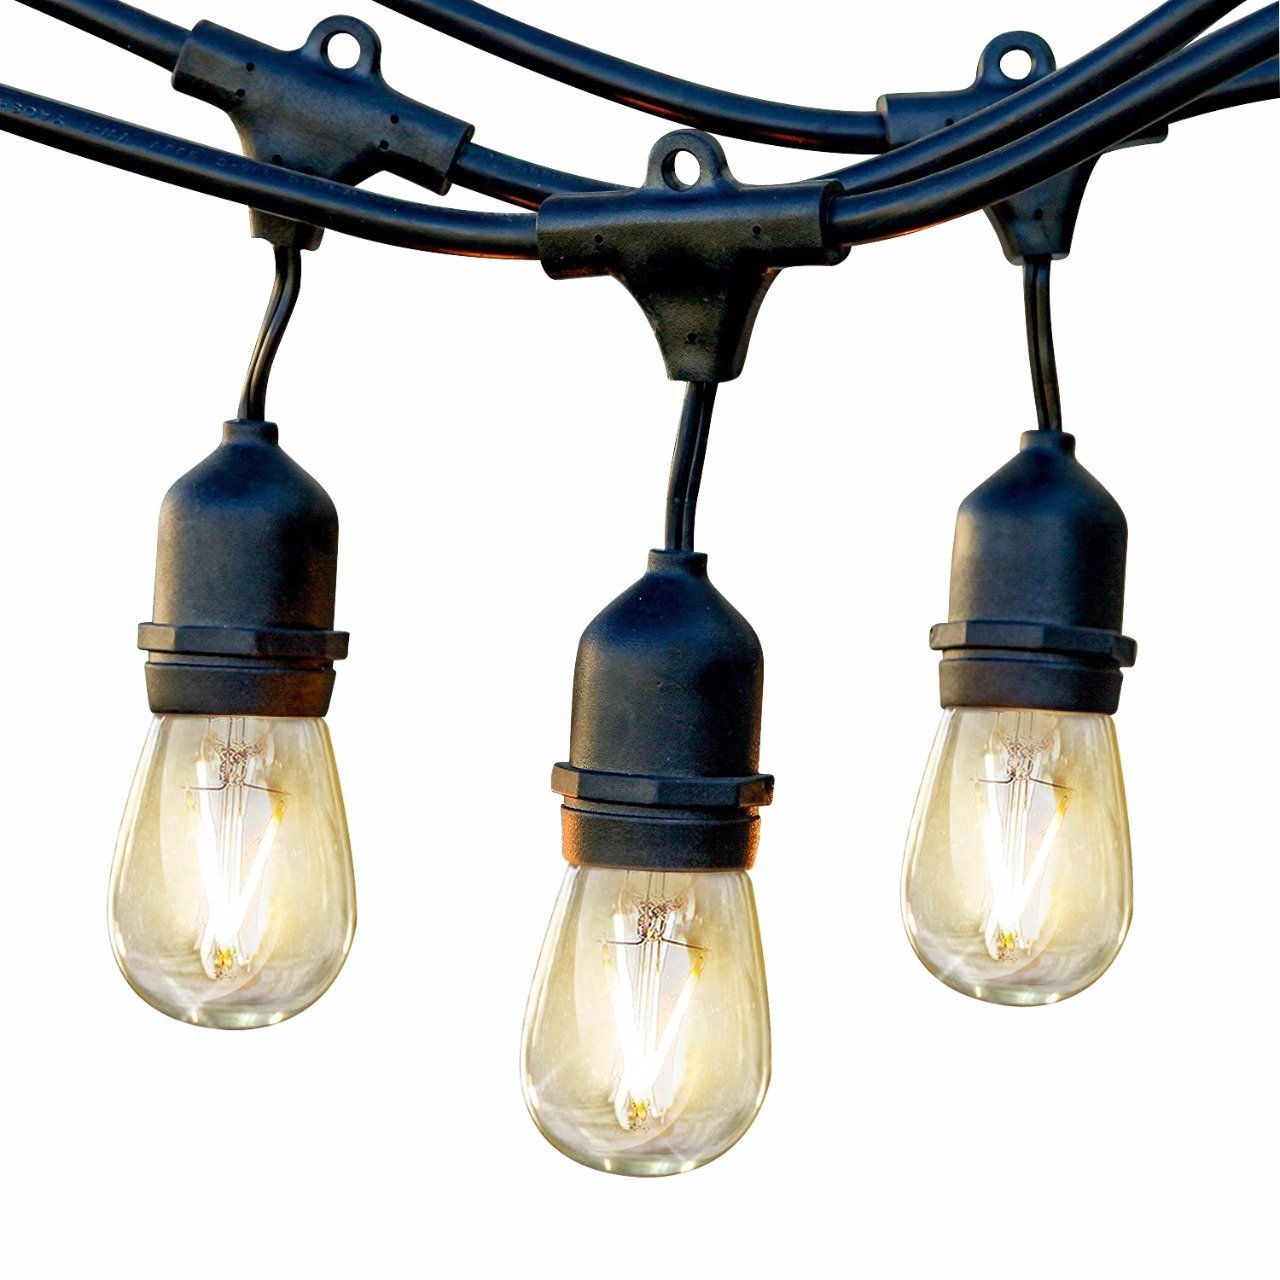 Brightech Ambience Pro LED Waterproof Outdoor String Lights - Heavy Duty, Hanging Vintage Edison Bulbs - Dimmable 2W, 48 Ft Patio Lighting/Cafe / Bistro Commercial Grade Strand Market